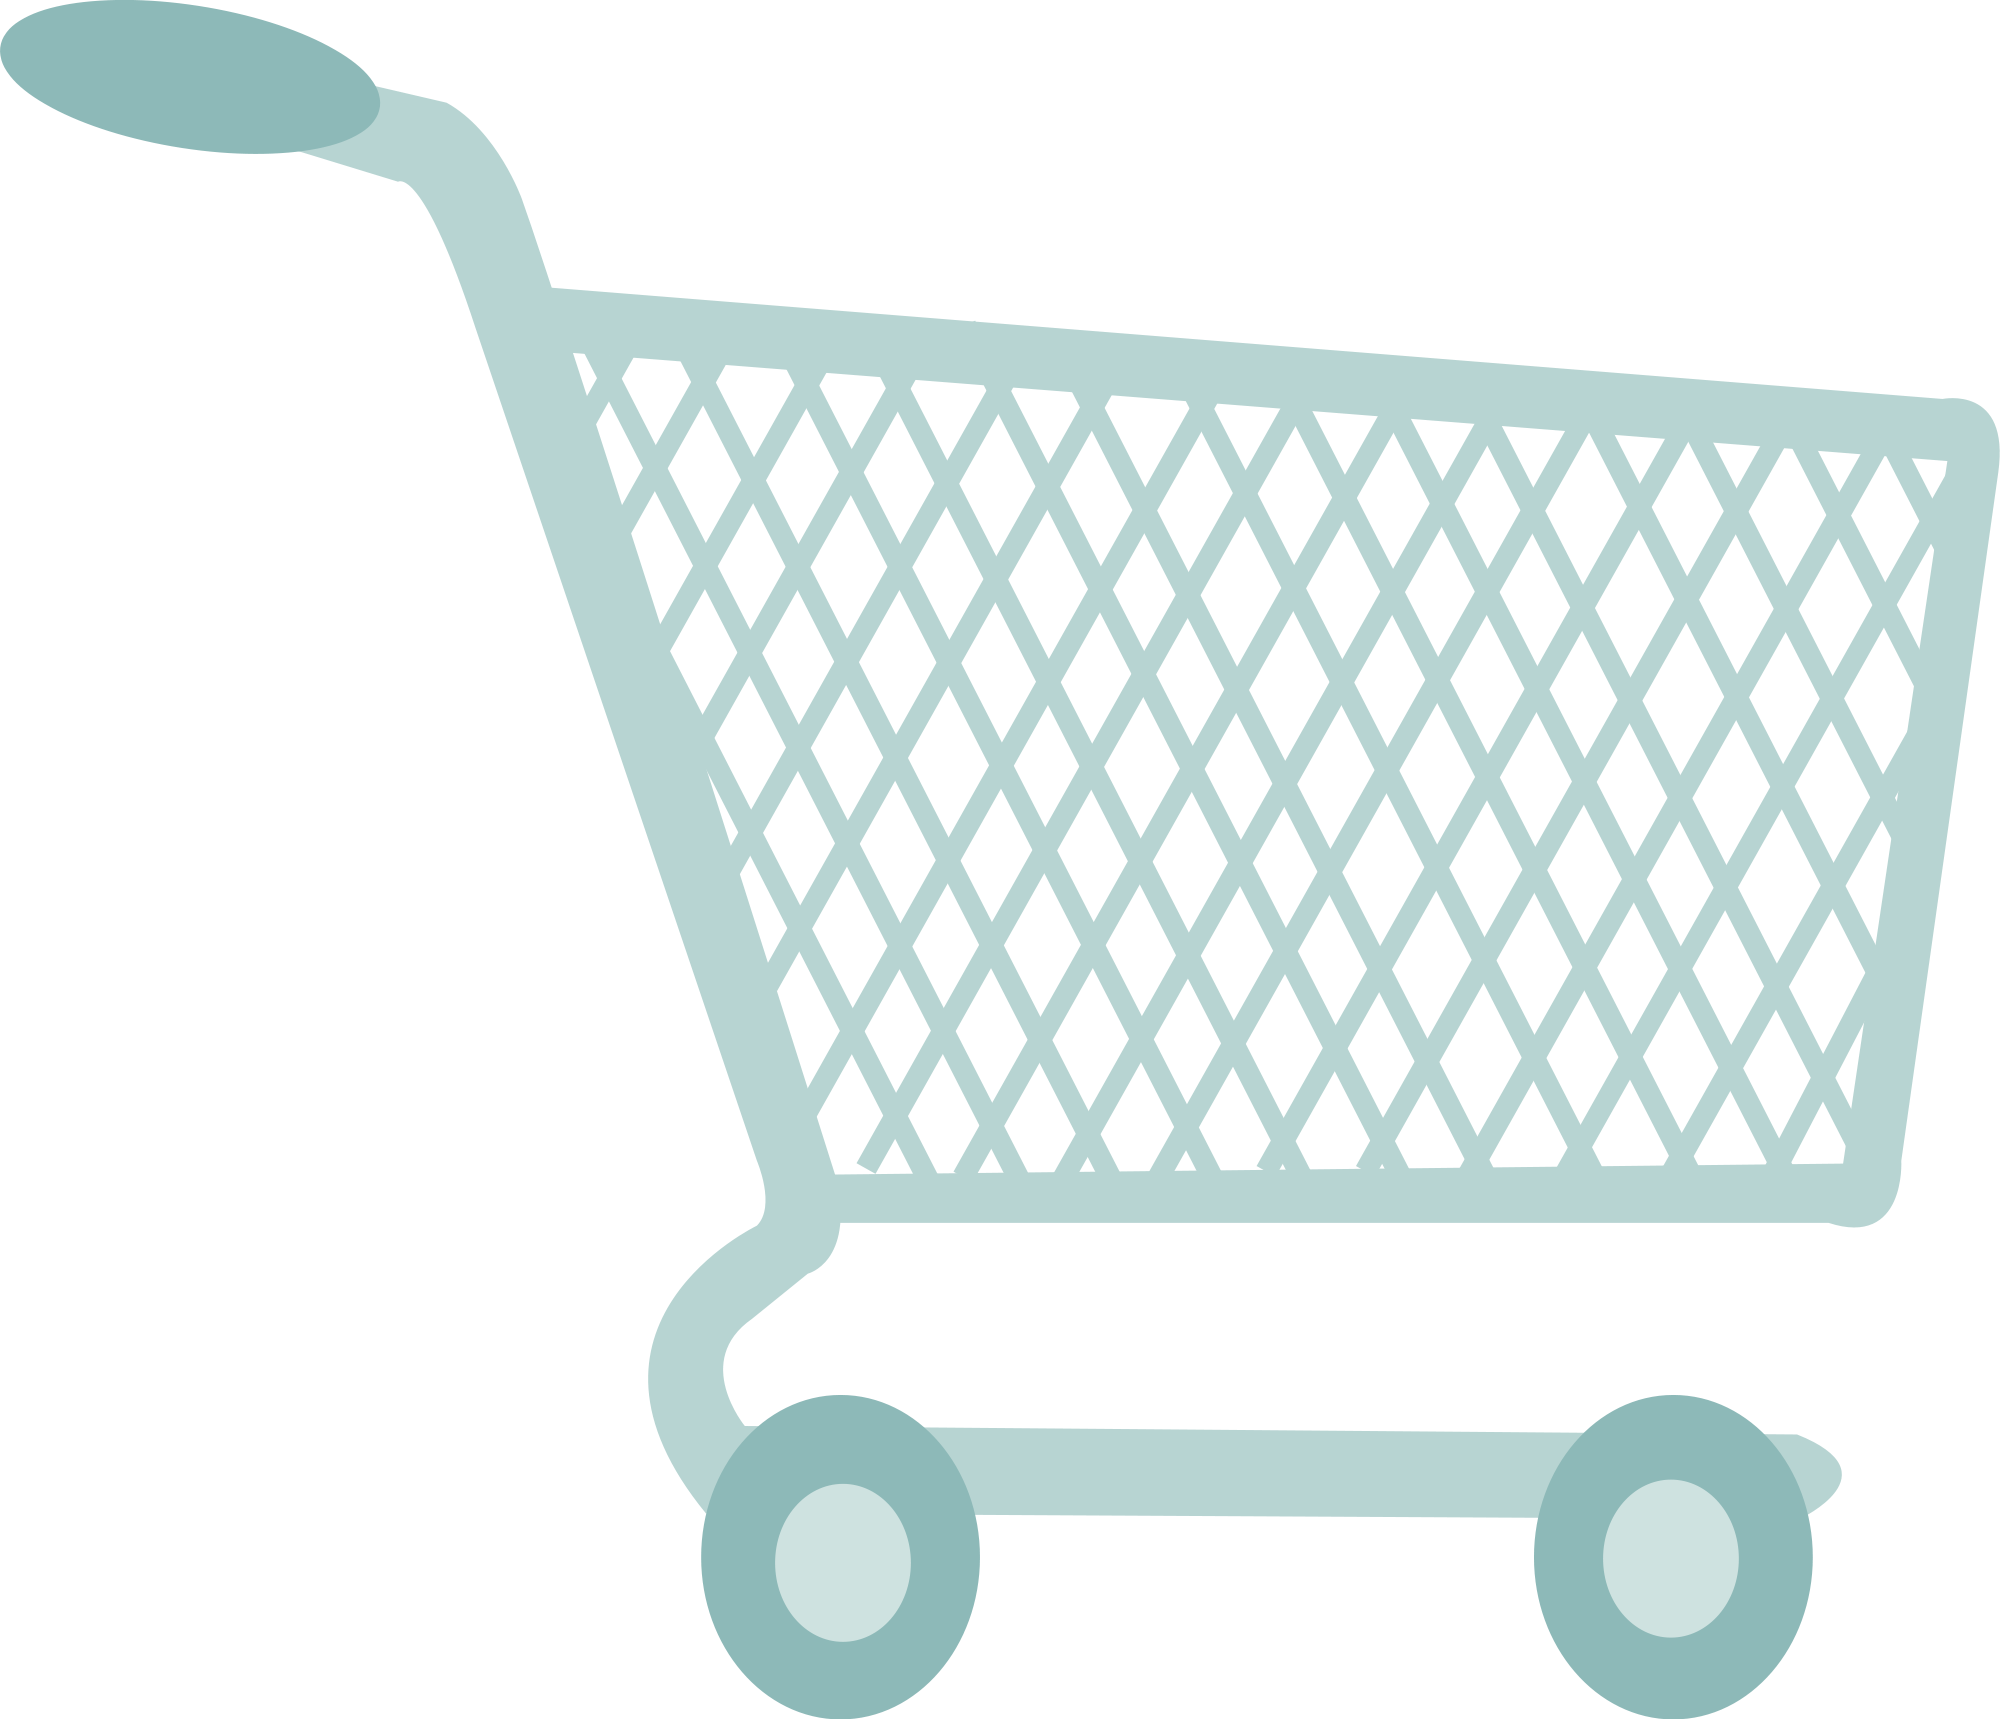 image freeuse download Grocery clipart shopping trolley. File empty cart clip